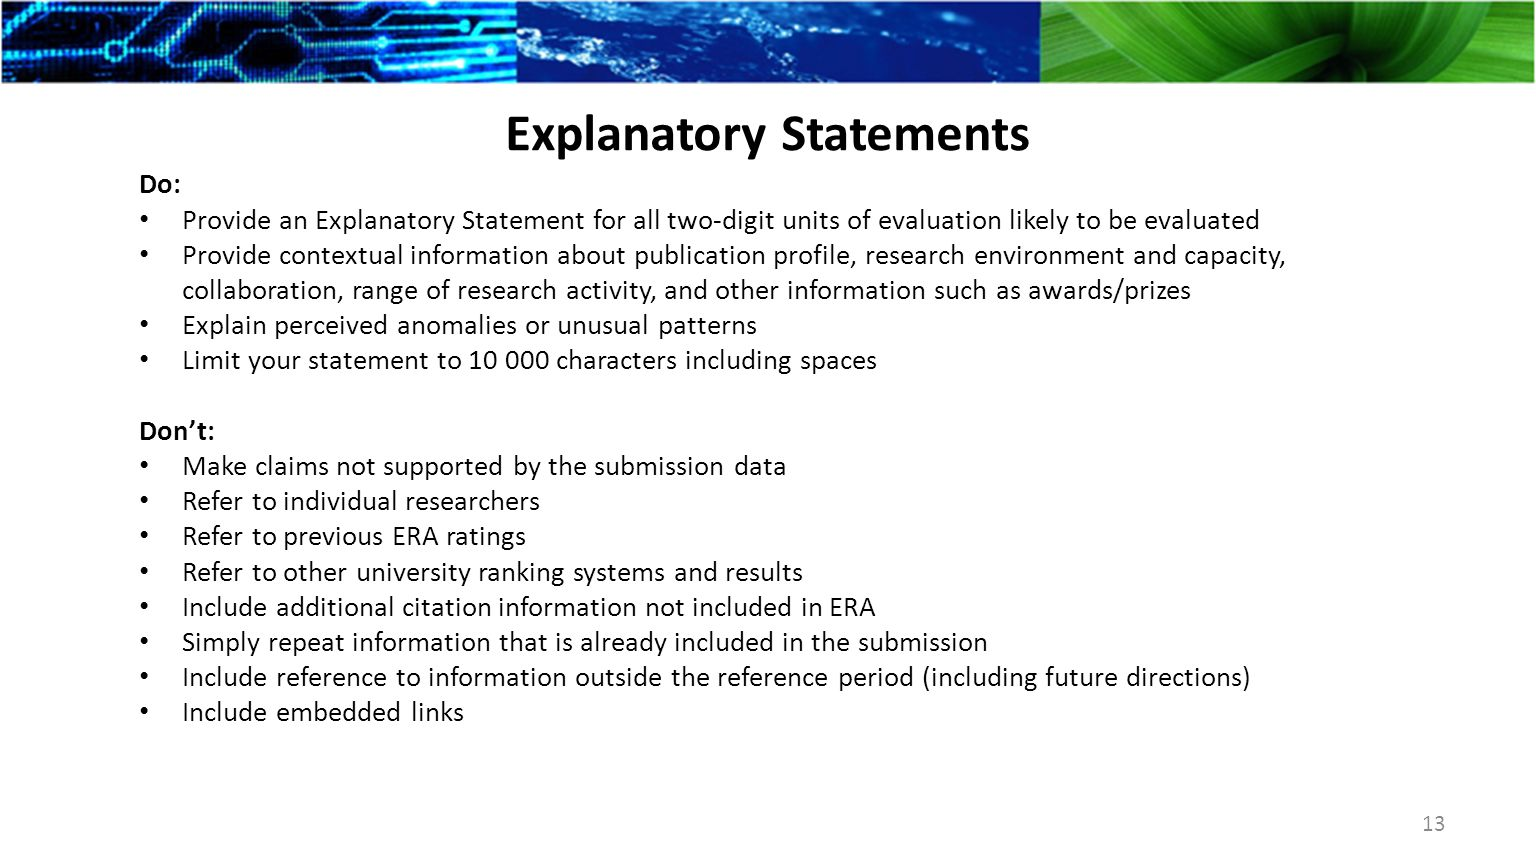 Explanatory Statements Do: Provide an Explanatory Statement for all two-digit units of evaluation likely to be evaluated Provide contextual information about publication profile, research environment and capacity, collaboration, range of research activity, and other information such as awards/prizes Explain perceived anomalies or unusual patterns Limit your statement to 10 000 characters including spaces Don't: Make claims not supported by the submission data Refer to individual researchers Refer to previous ERA ratings Refer to other university ranking systems and results Include additional citation information not included in ERA Simply repeat information that is already included in the submission Include reference to information outside the reference period (including future directions) Include embedded links 13